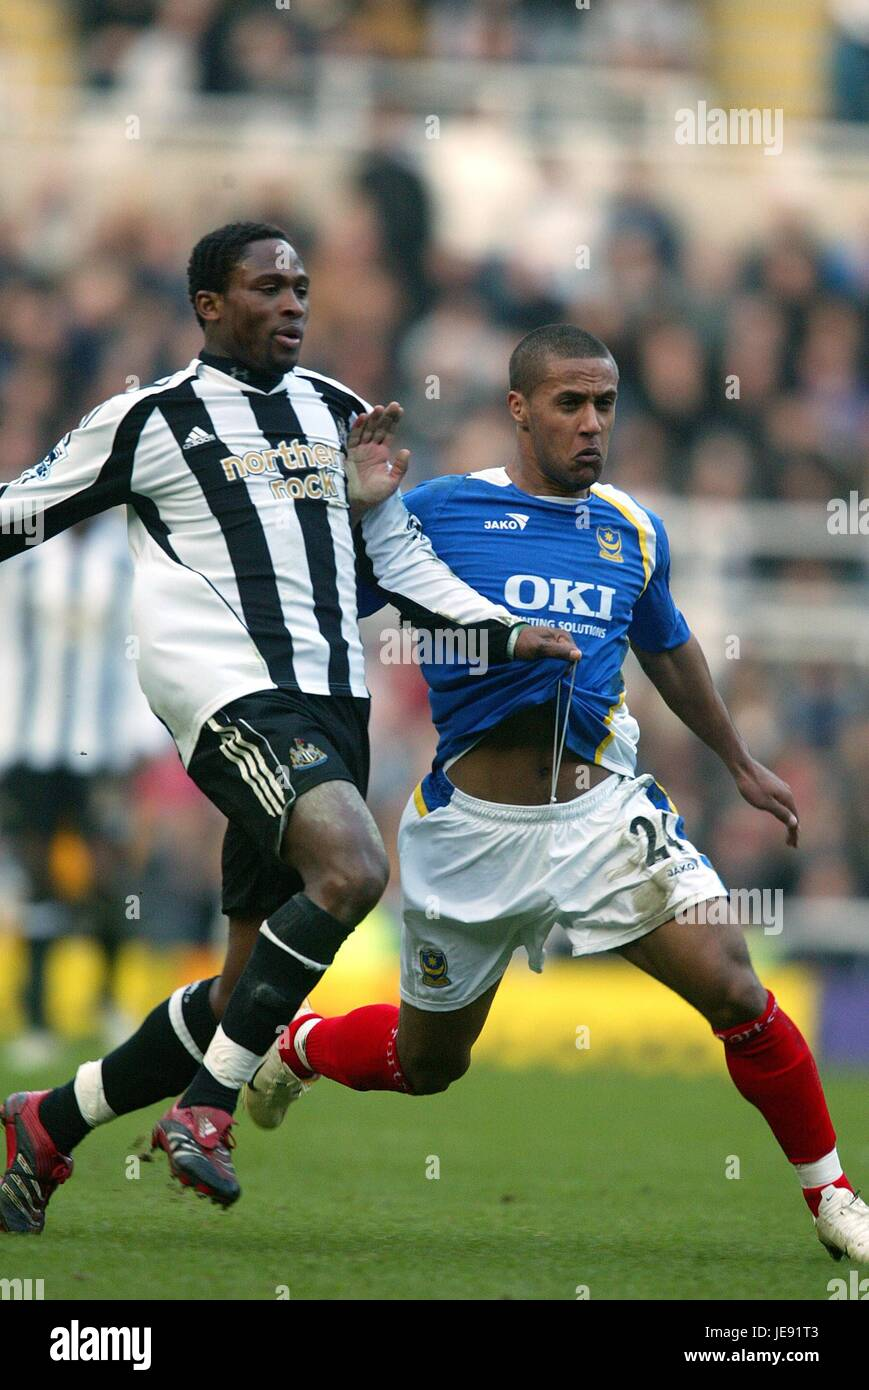 C BABAYARO & WAYNE ROUTLEDGE NEWCASTLE UTD V PORTSMOUTH ST JAMES PARK NEWCASTLE ENGLAND 04 February 2006 - Stock Image